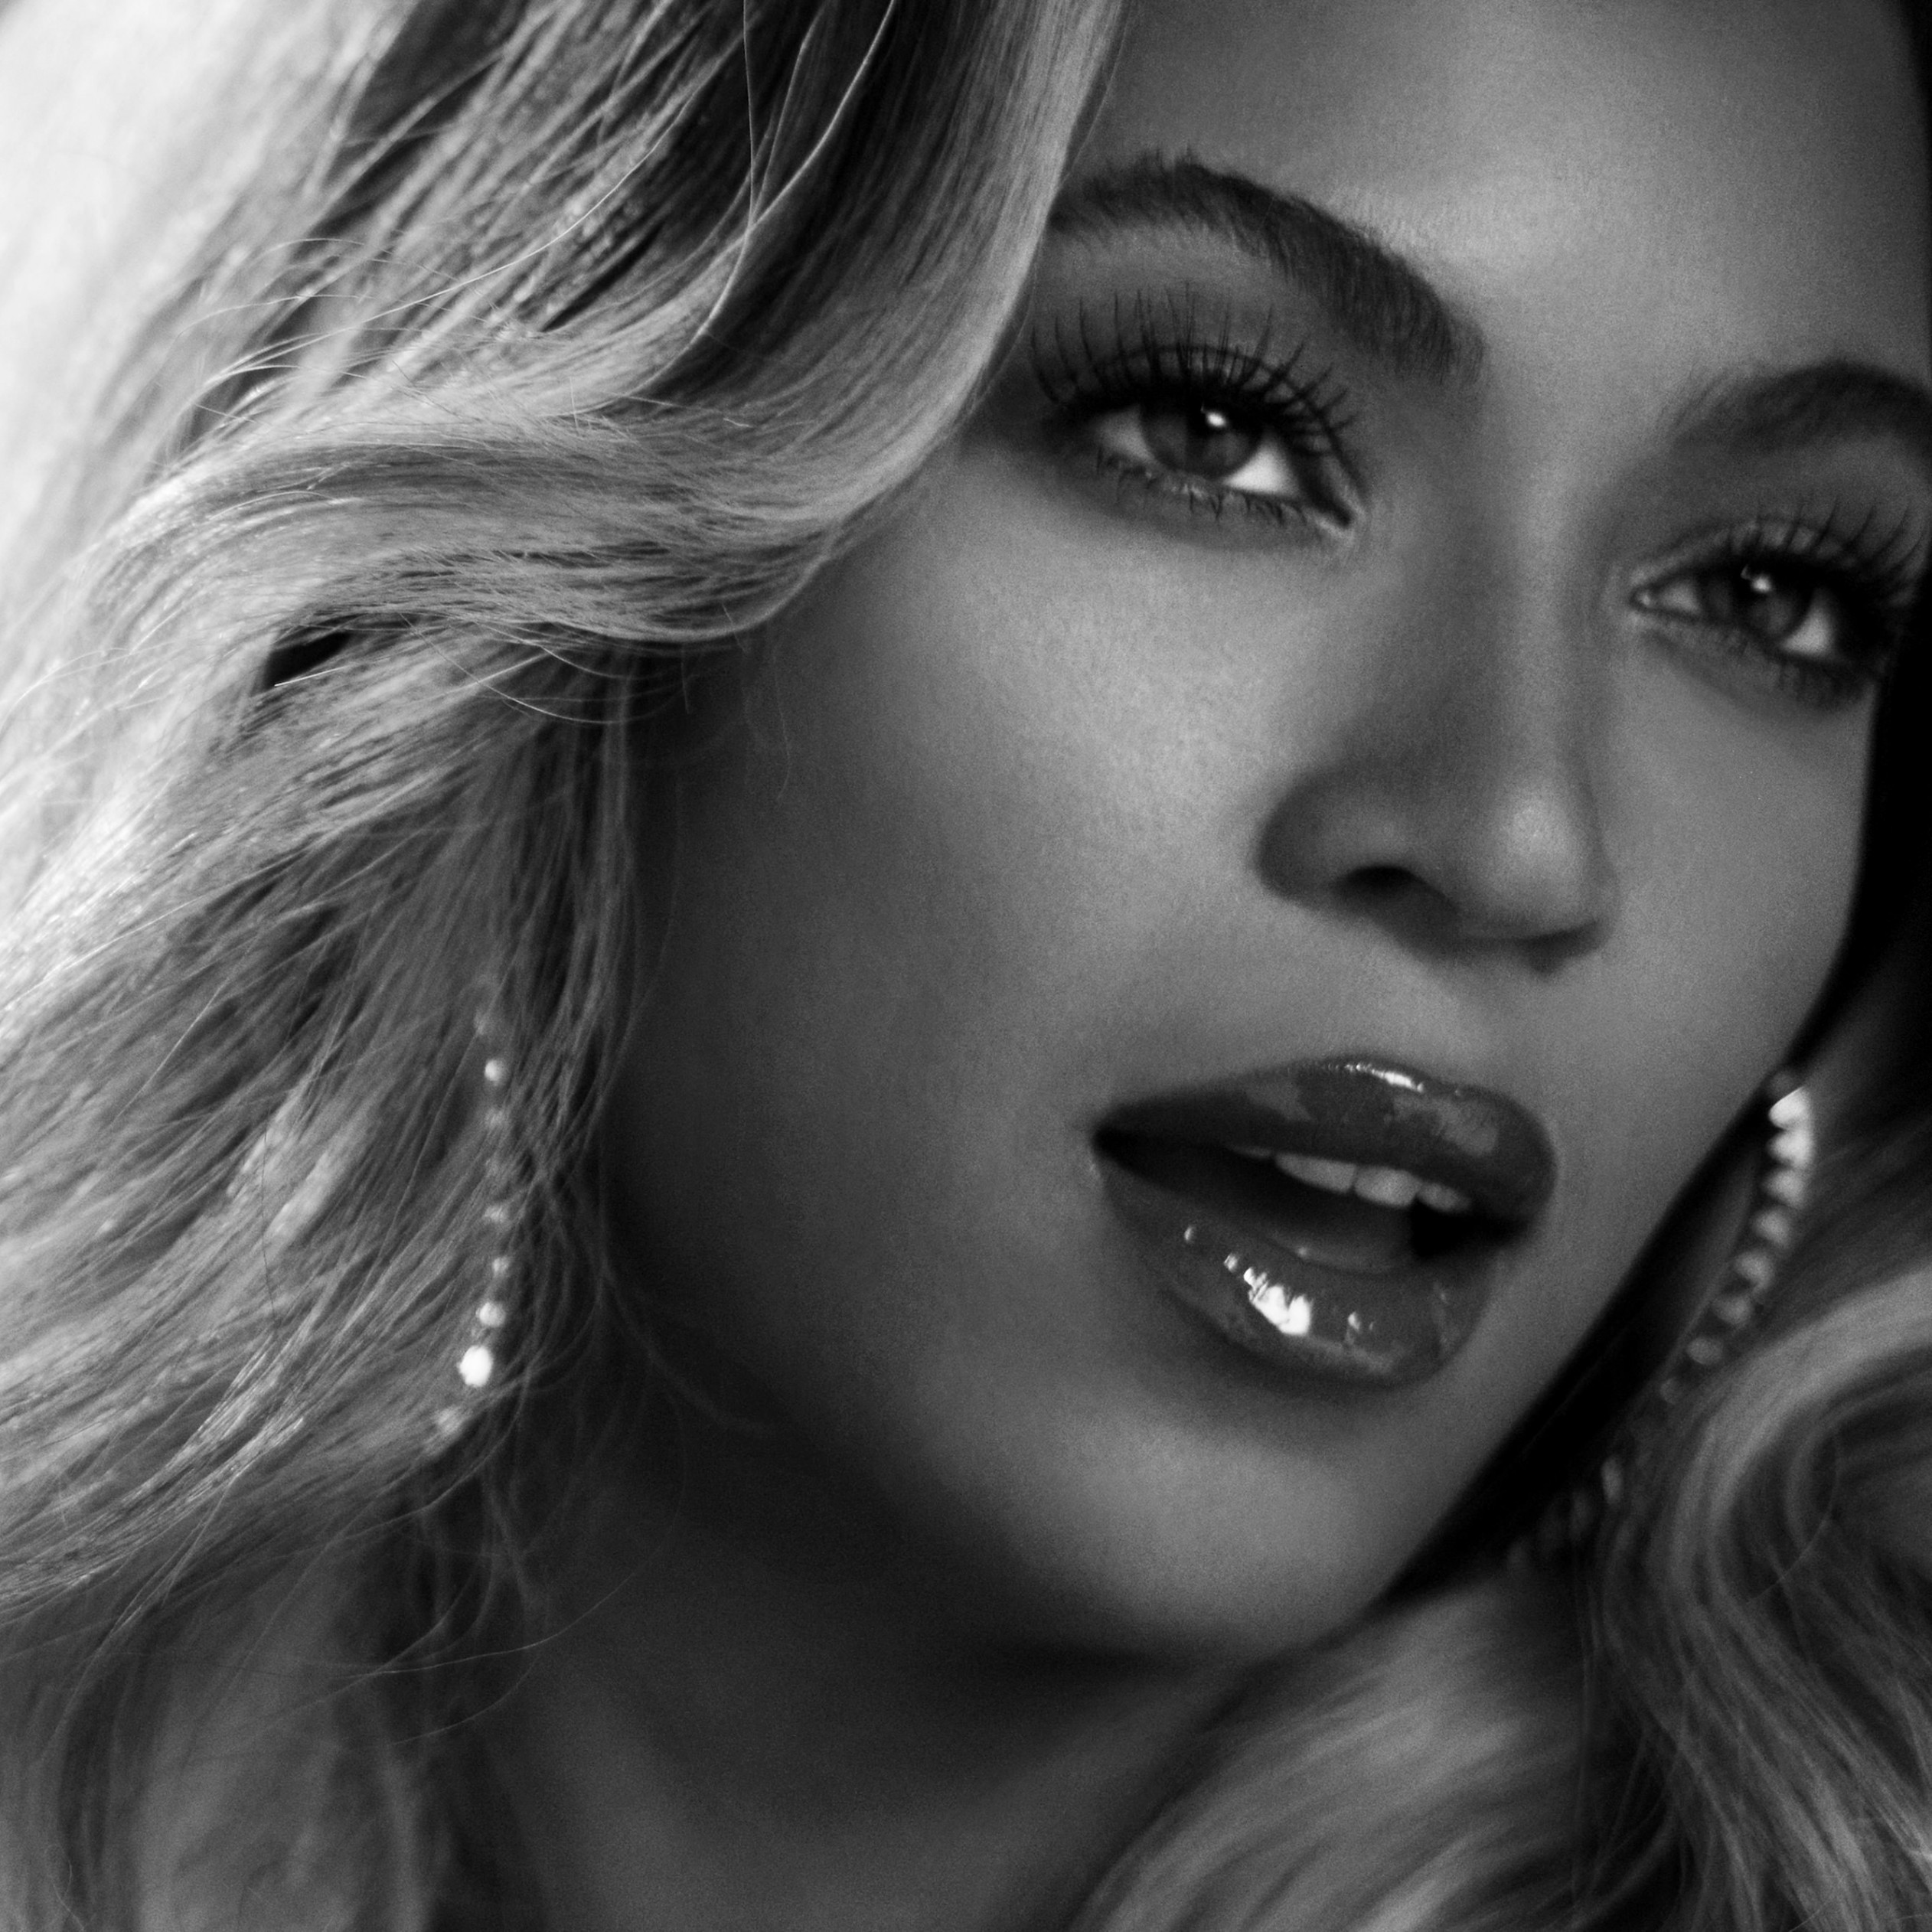 Beyonce in Black & White Wallpaper for Apple iPad Air